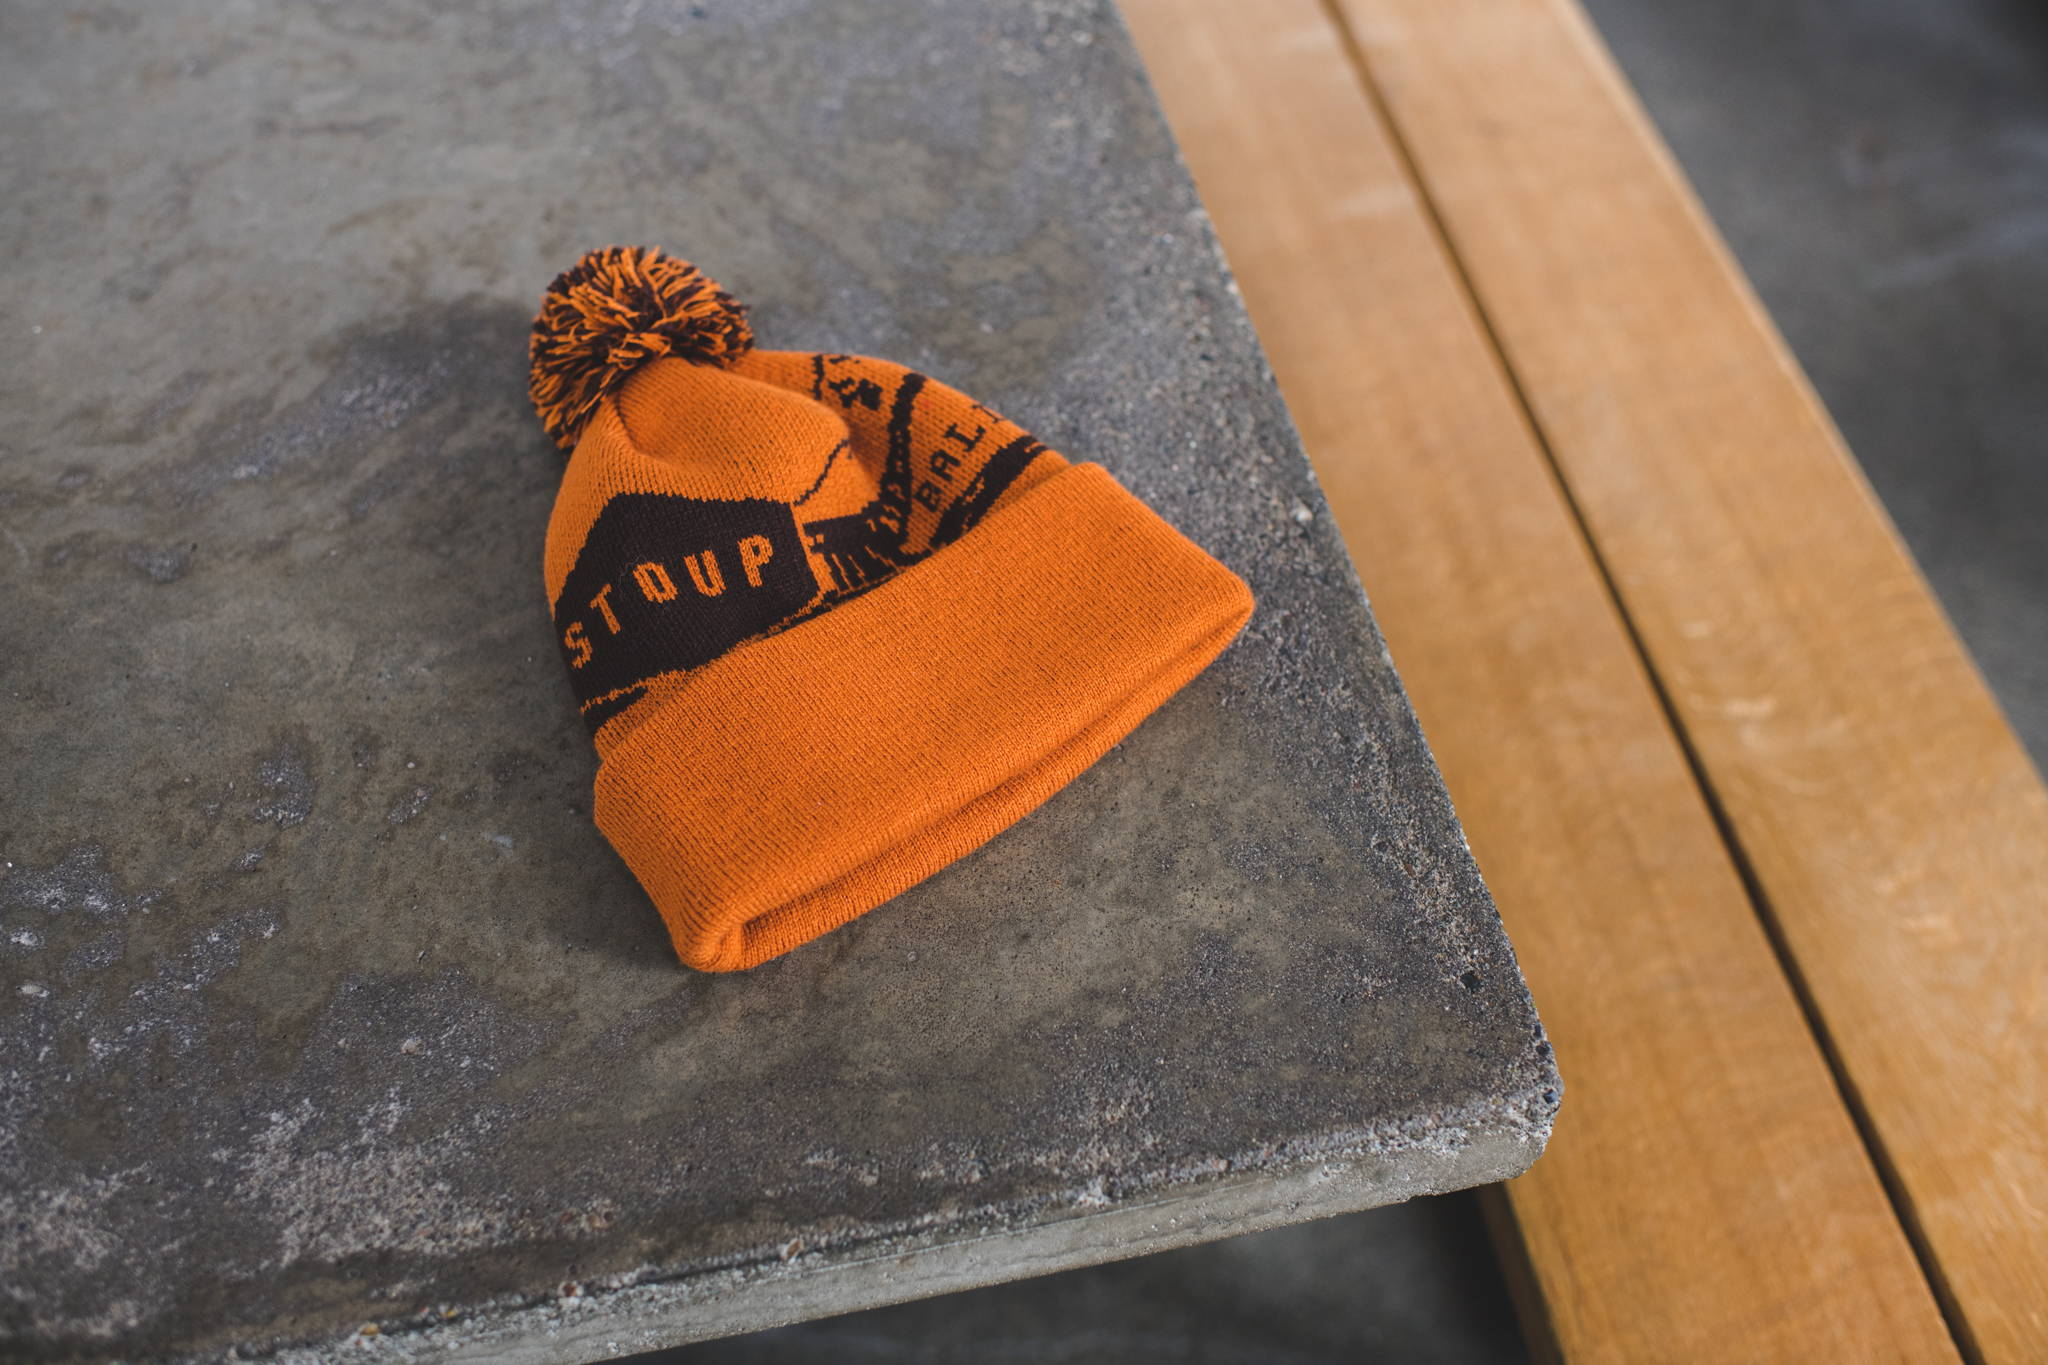 Stoup Brewing Co. Custom Pom Pom Beanie